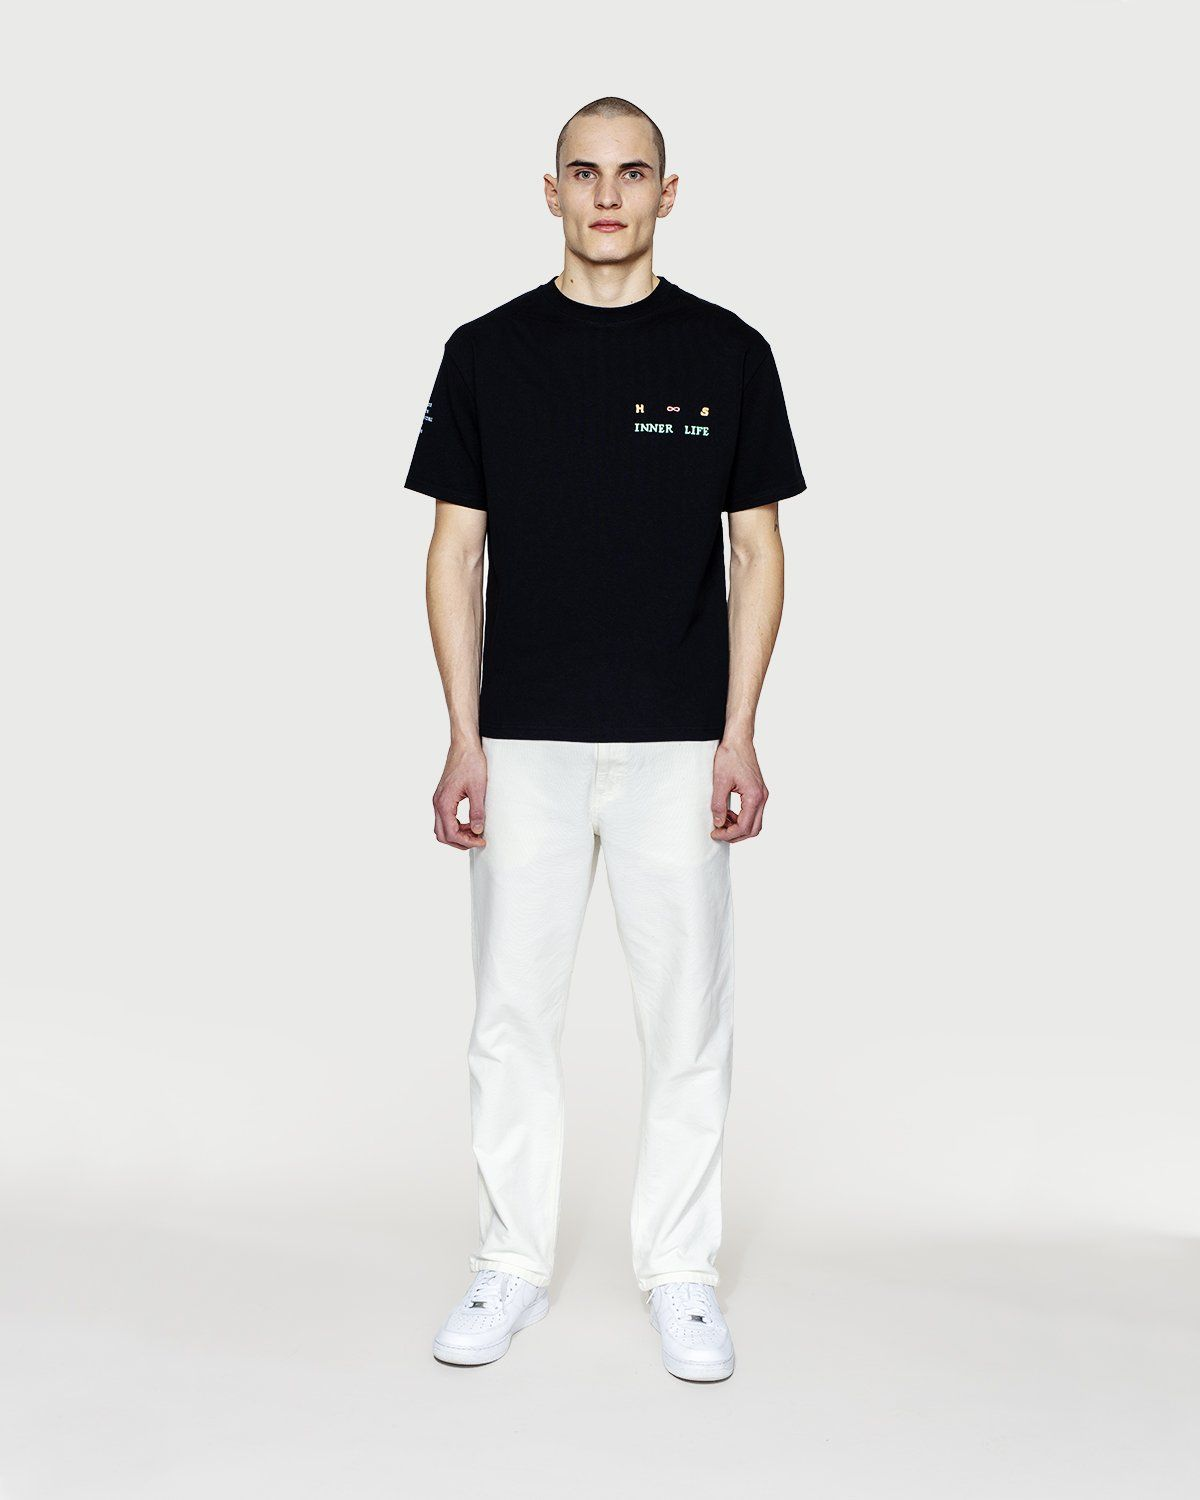 Inner Life by Highsnobiety - T-Shirt Black - Image 2